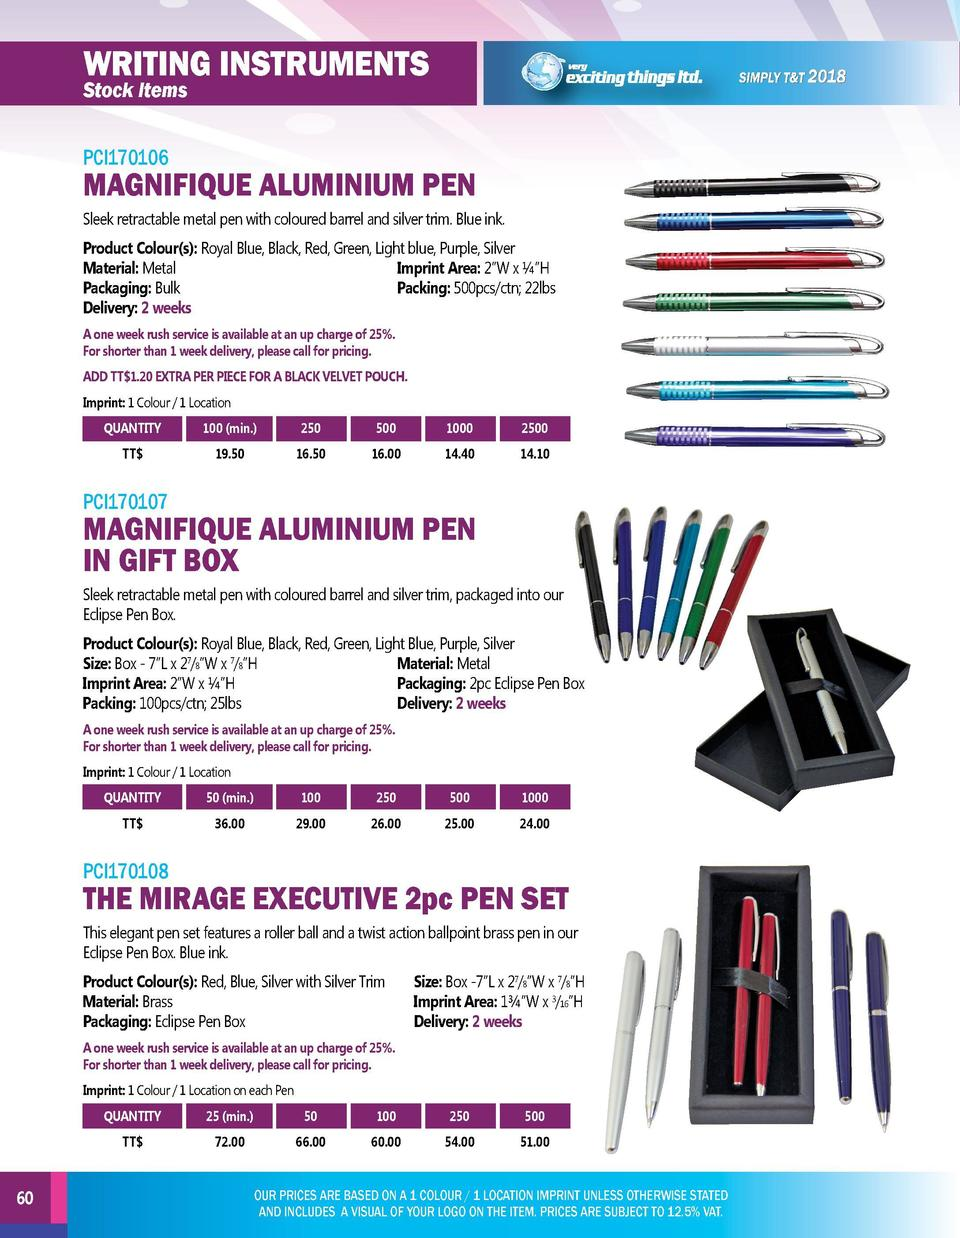 writing instruments  writing instruments  PCI170106  PCI170109  Stock Items  Stock Items  MAGNIFIQUE ALUMINIUM PEN  SINGLE...